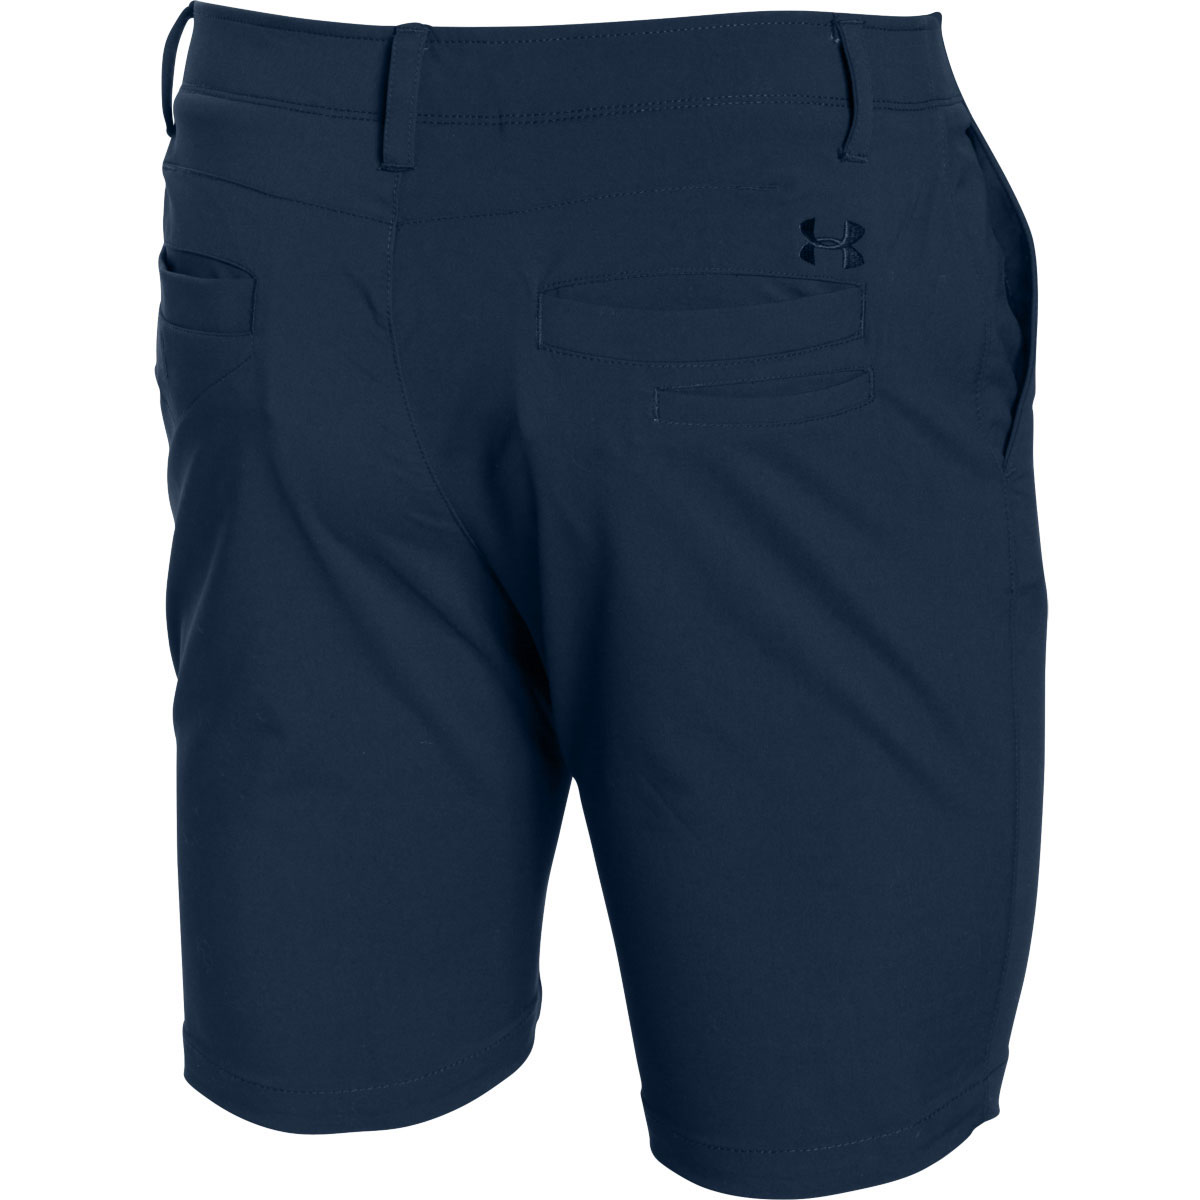 Under-Armour-Mens-UA-Match-Play-Taper-Tech-Performance-Golf-Shorts-29-OFF-RRP Indexbild 3